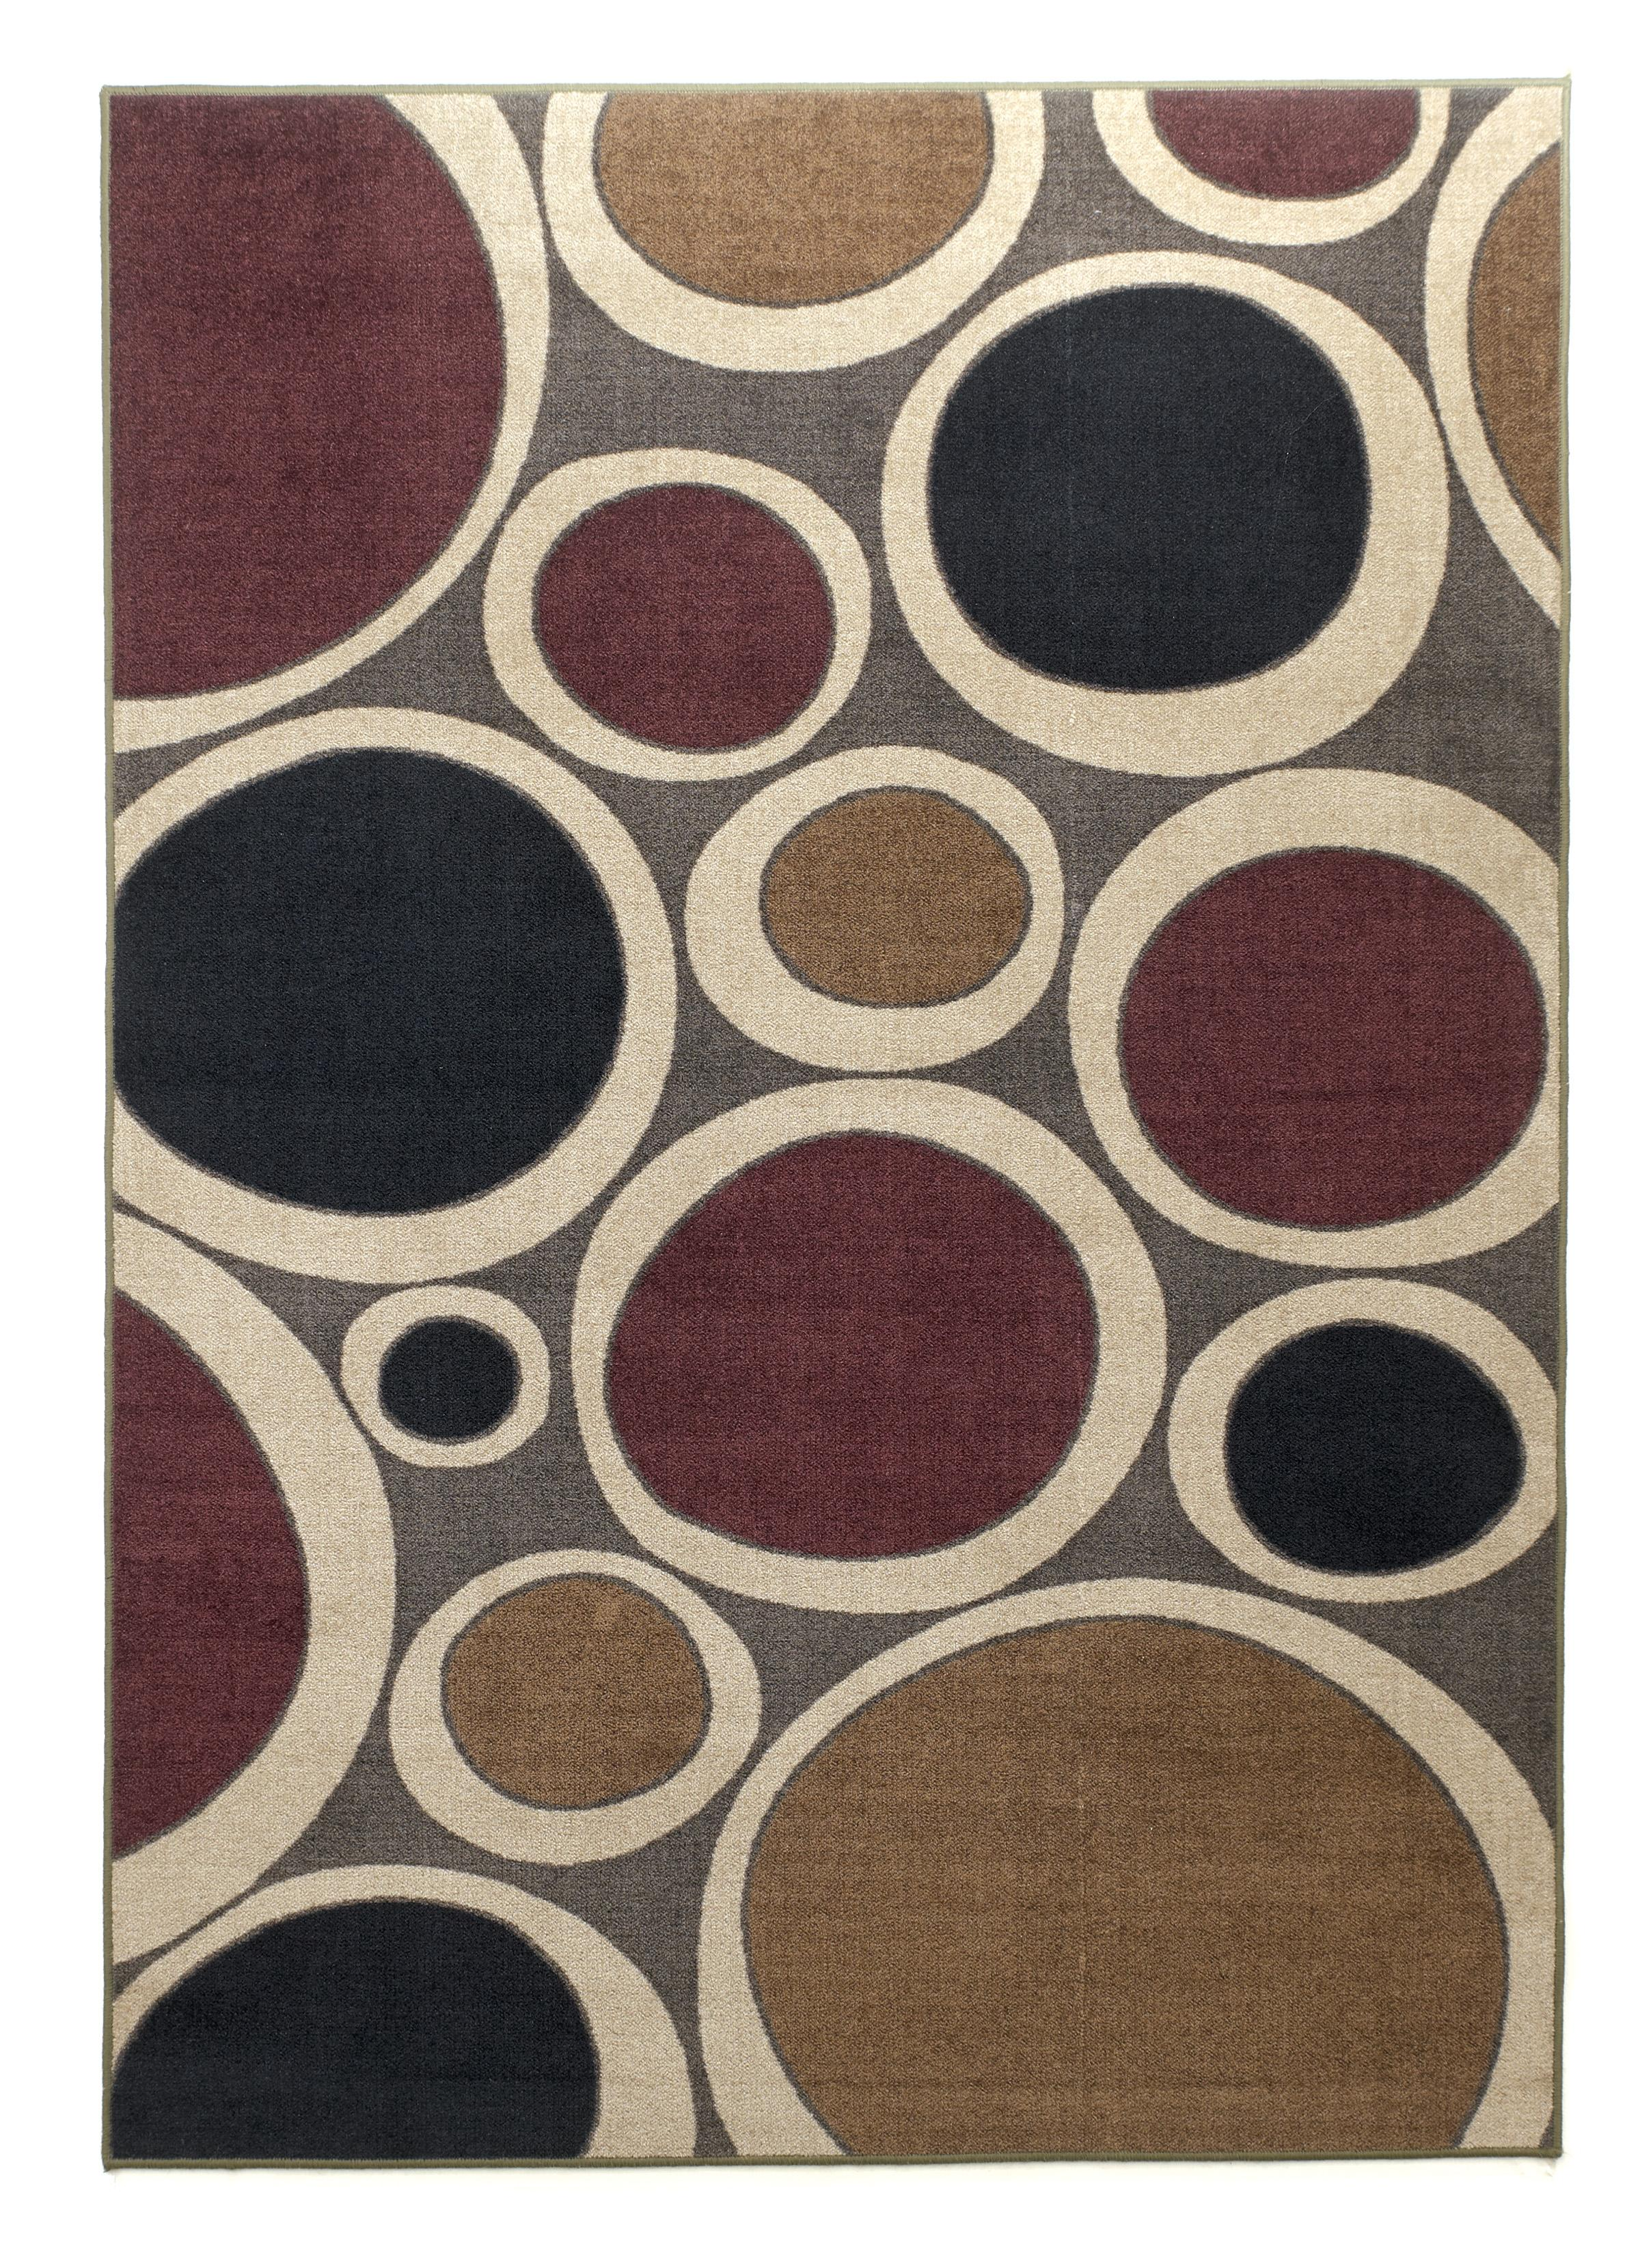 Signature Design by Ashley Contemporary Area Rugs Popstar - Plum Small Rug - Item Number: R139002